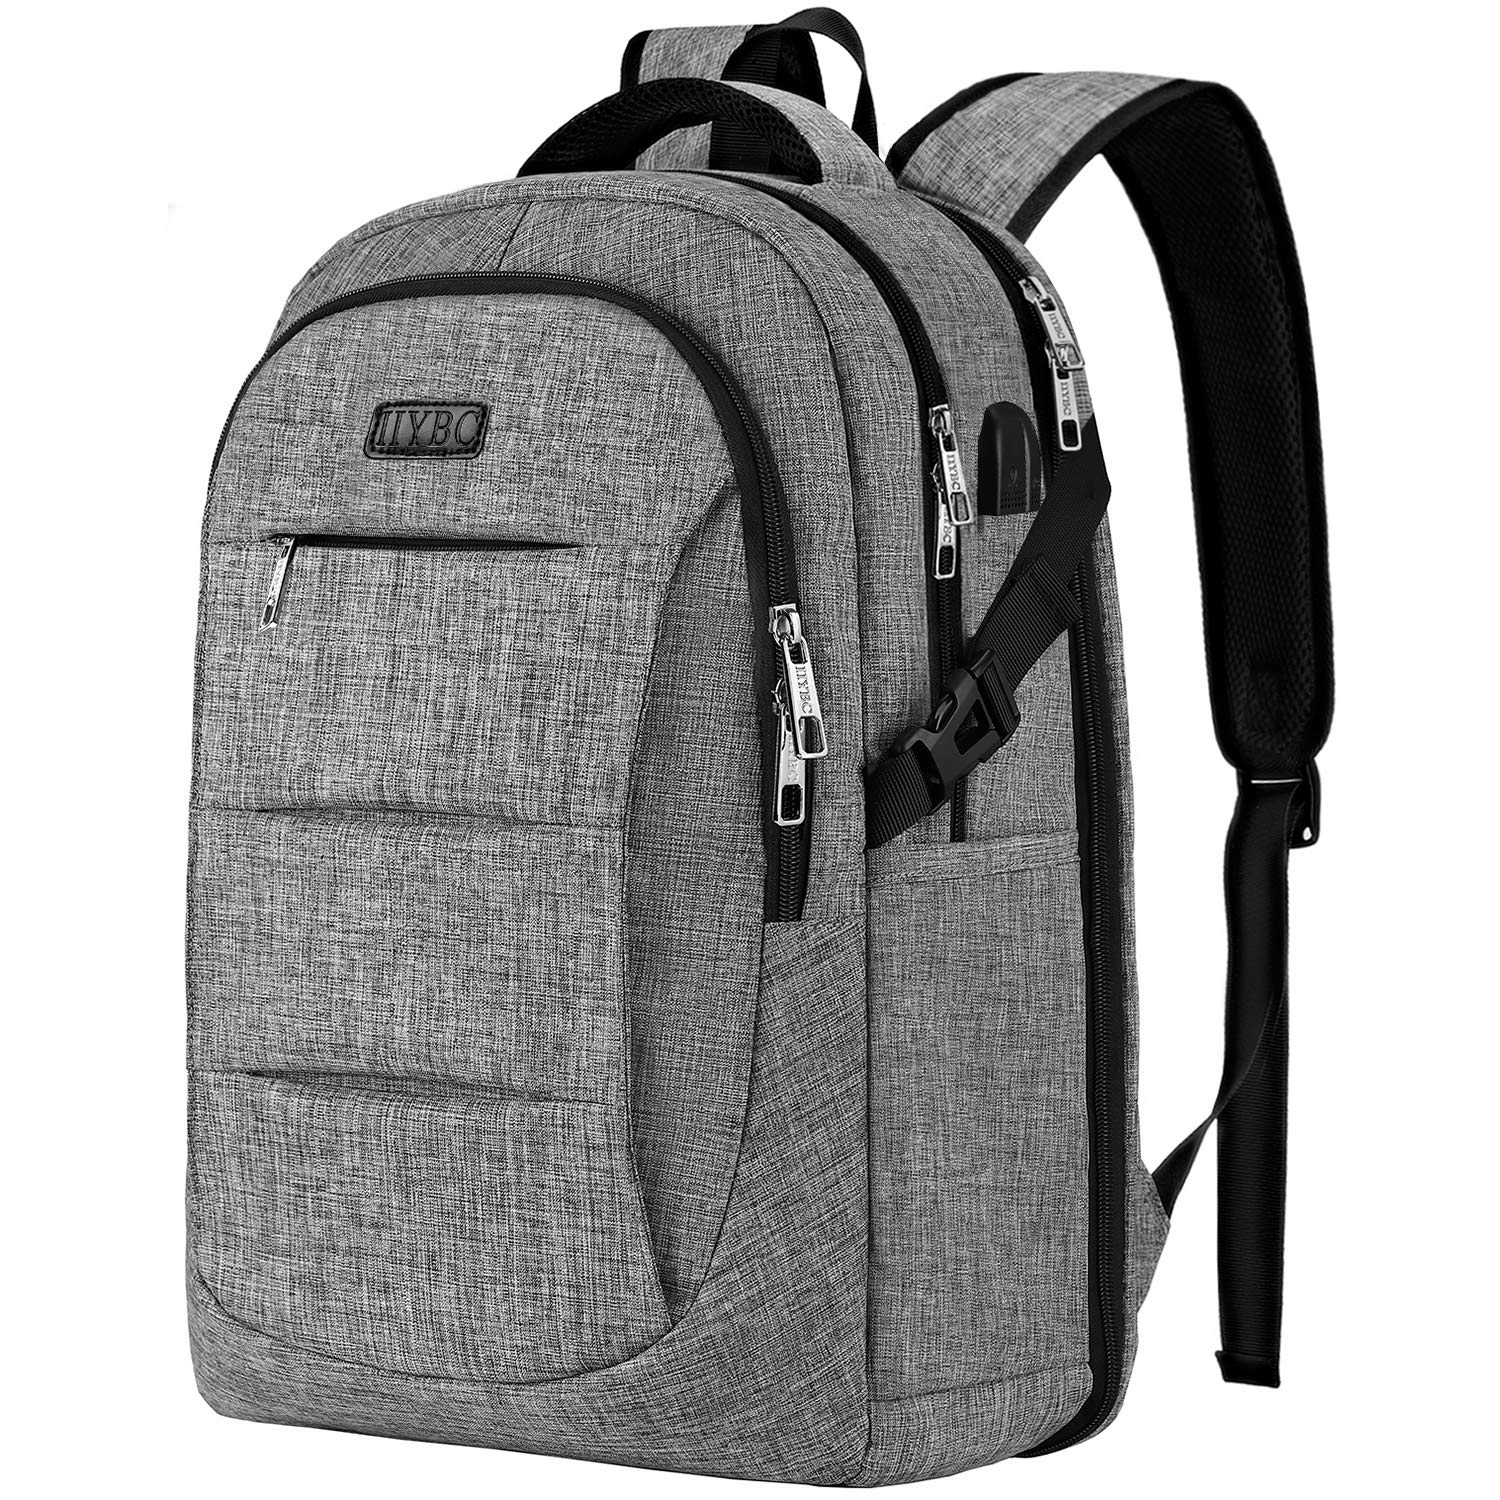 447a5552ac13 Travel Laptop Backpack, TSA Anti-Theft Business Laptop Backpack Bag with  USB Charging Port for Womens Mens, Durable Water Resistant 15.6 Inch  College ...